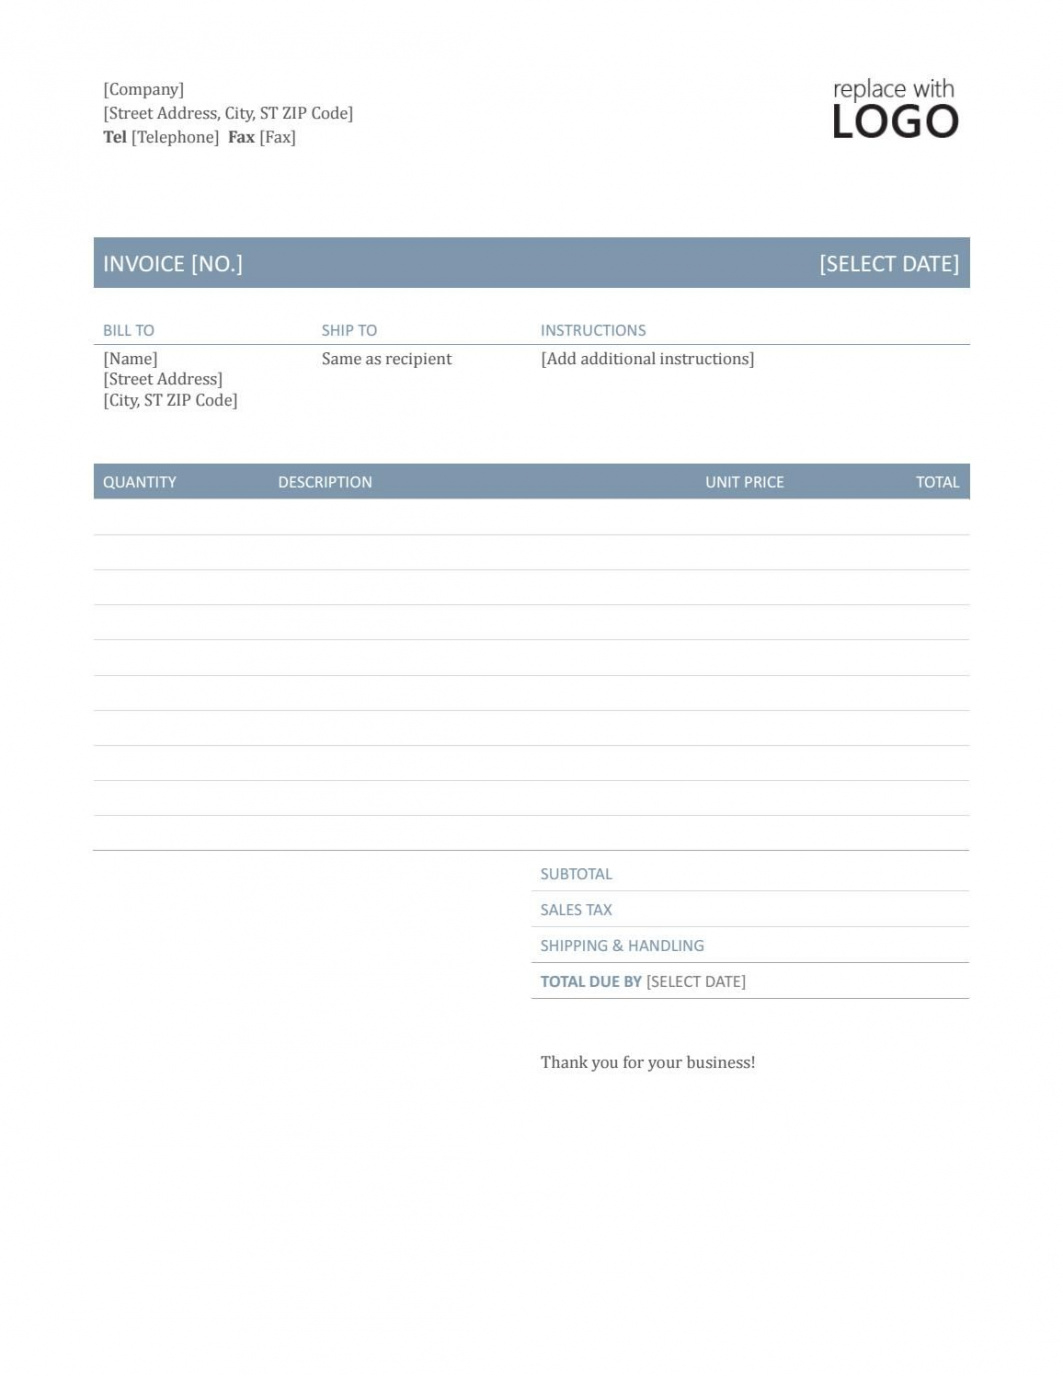 travel expenses quotation template | invoice template word travel expense invoice template example